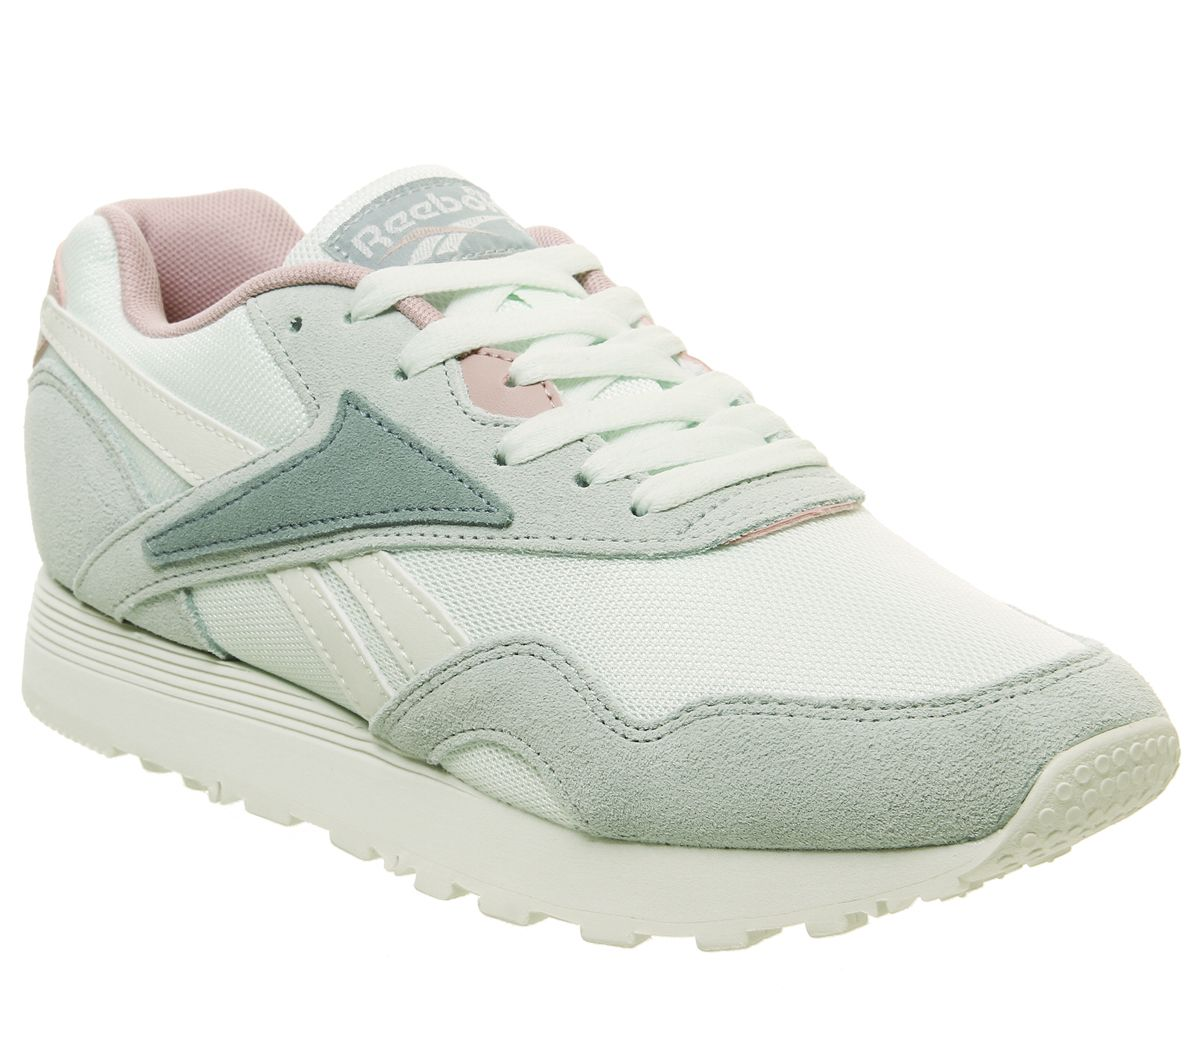 3da3bb2be69 Reebok Rapide Trainers Storm Glow Sea Spray Teal Smoky Rose - Hers ...